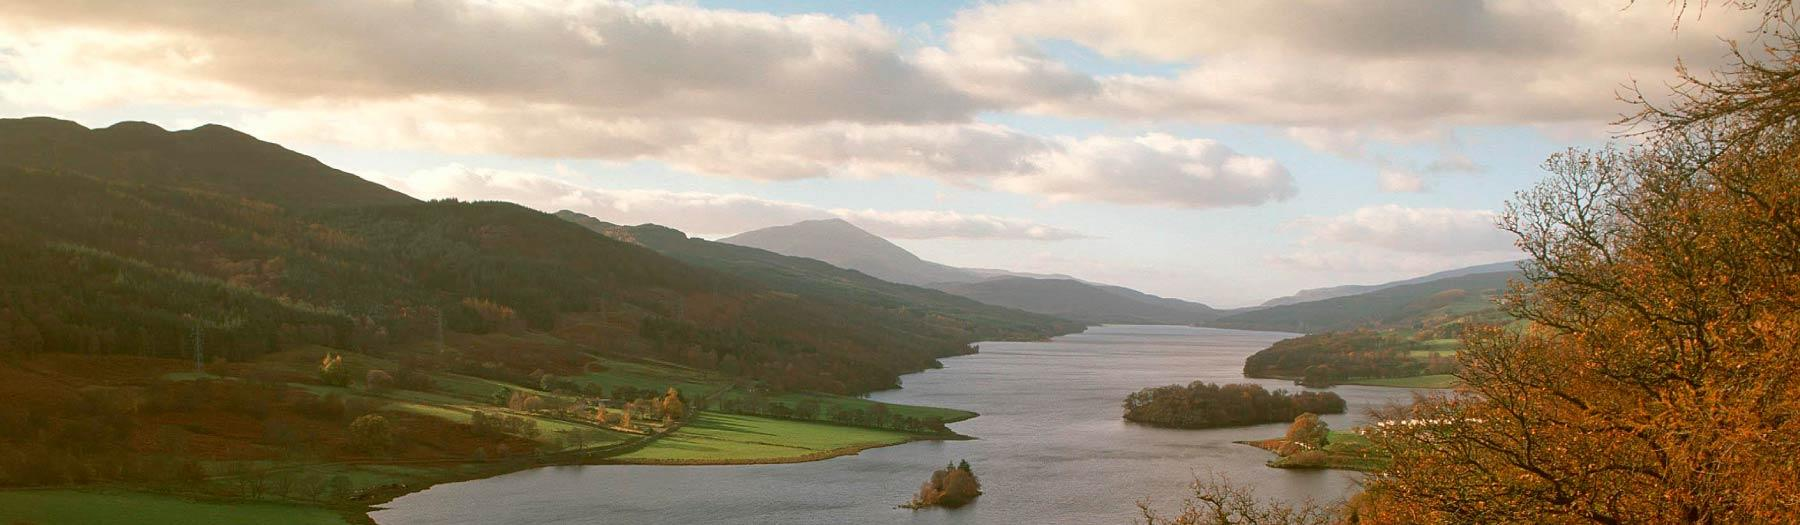 Image: Loch Tummel from Queen's View. Credit: Image used with permission from VisitScotland and Scottish Viewpoint.